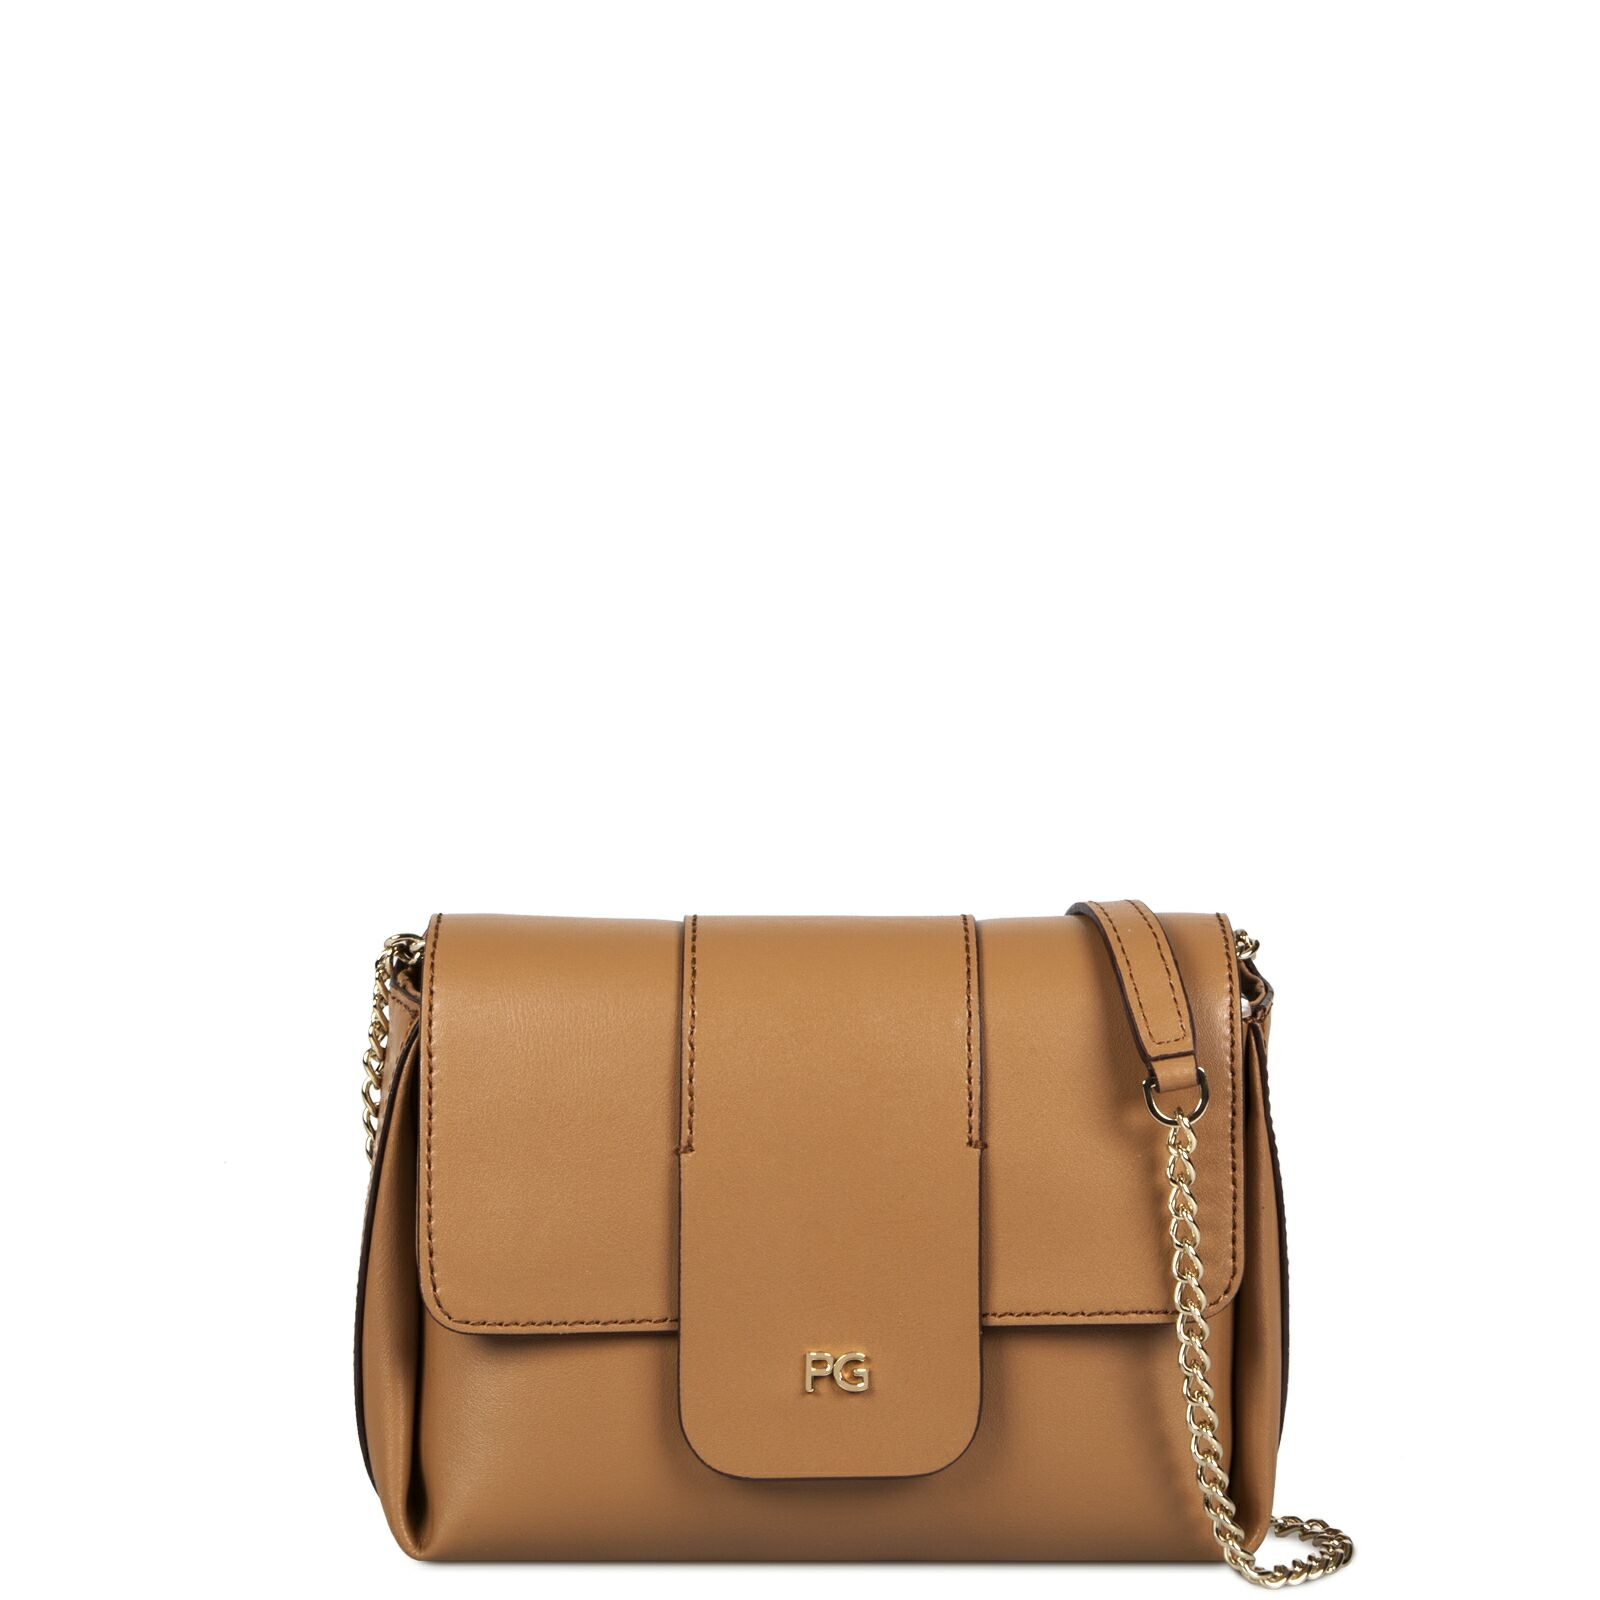 TRIBECA CROSS BODY BAG - Bags